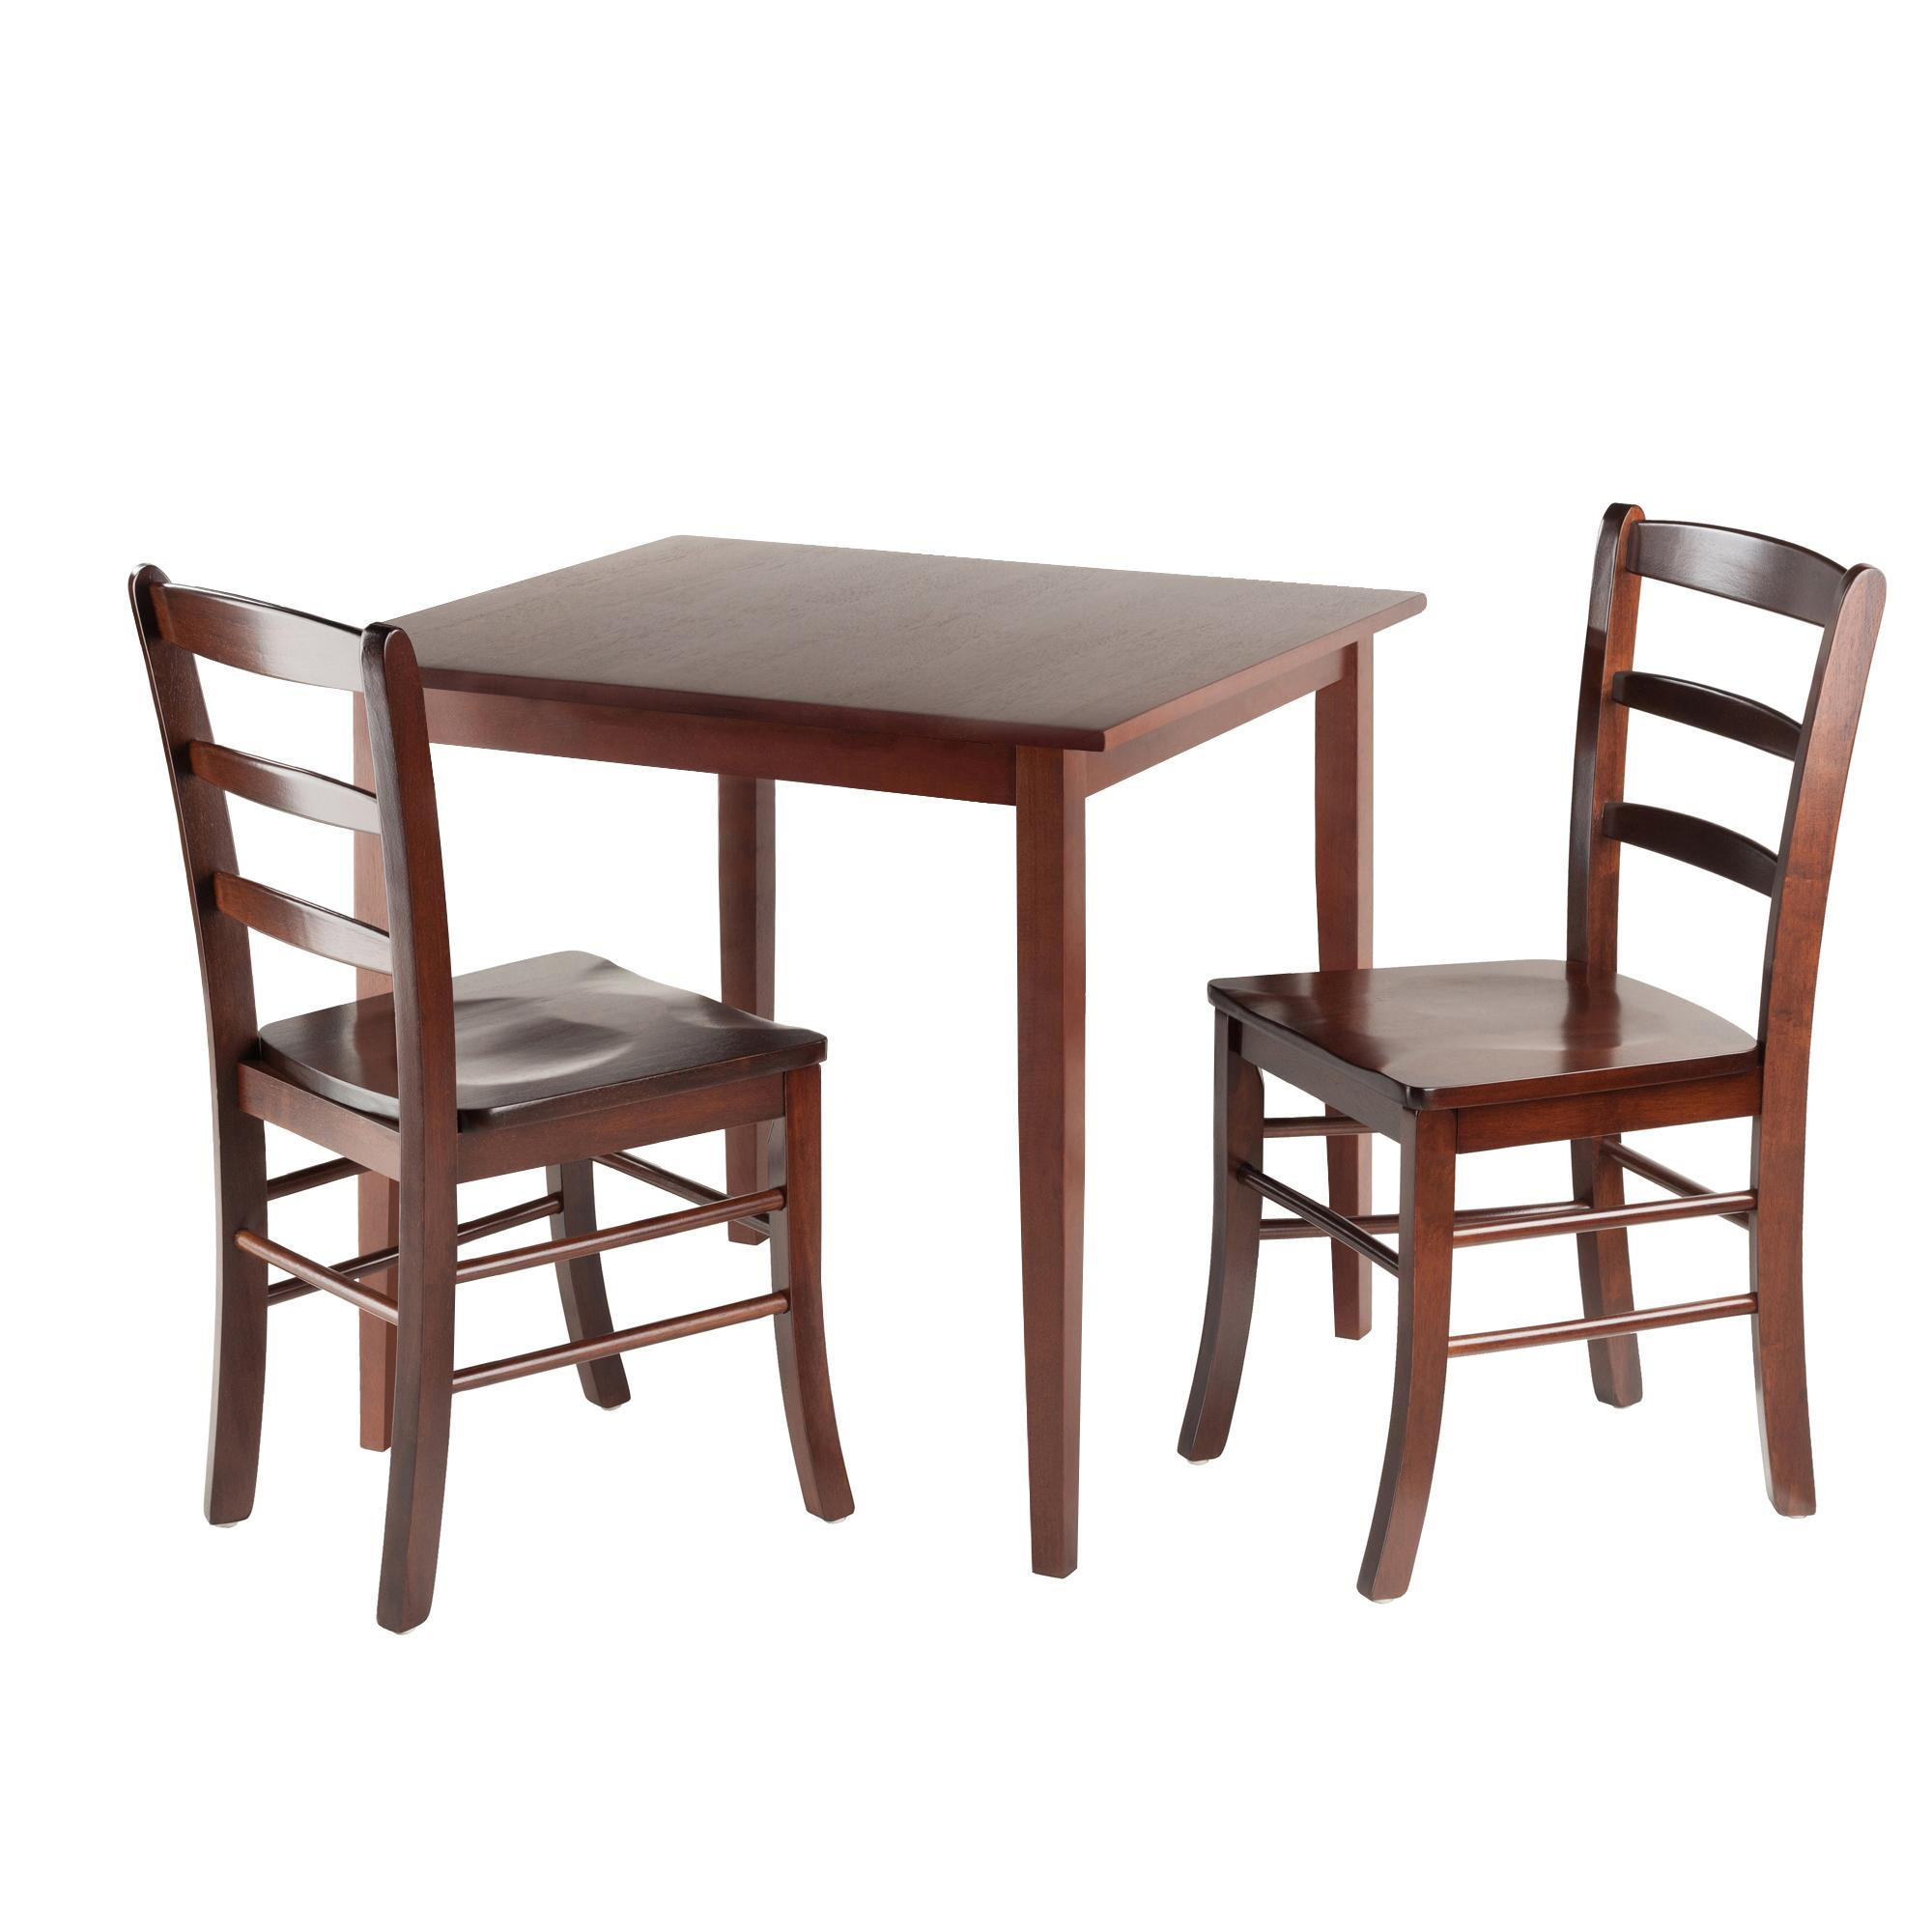 Amazoncom Winsome Groveland Square Dining Table With Chairs - Small square breakfast table